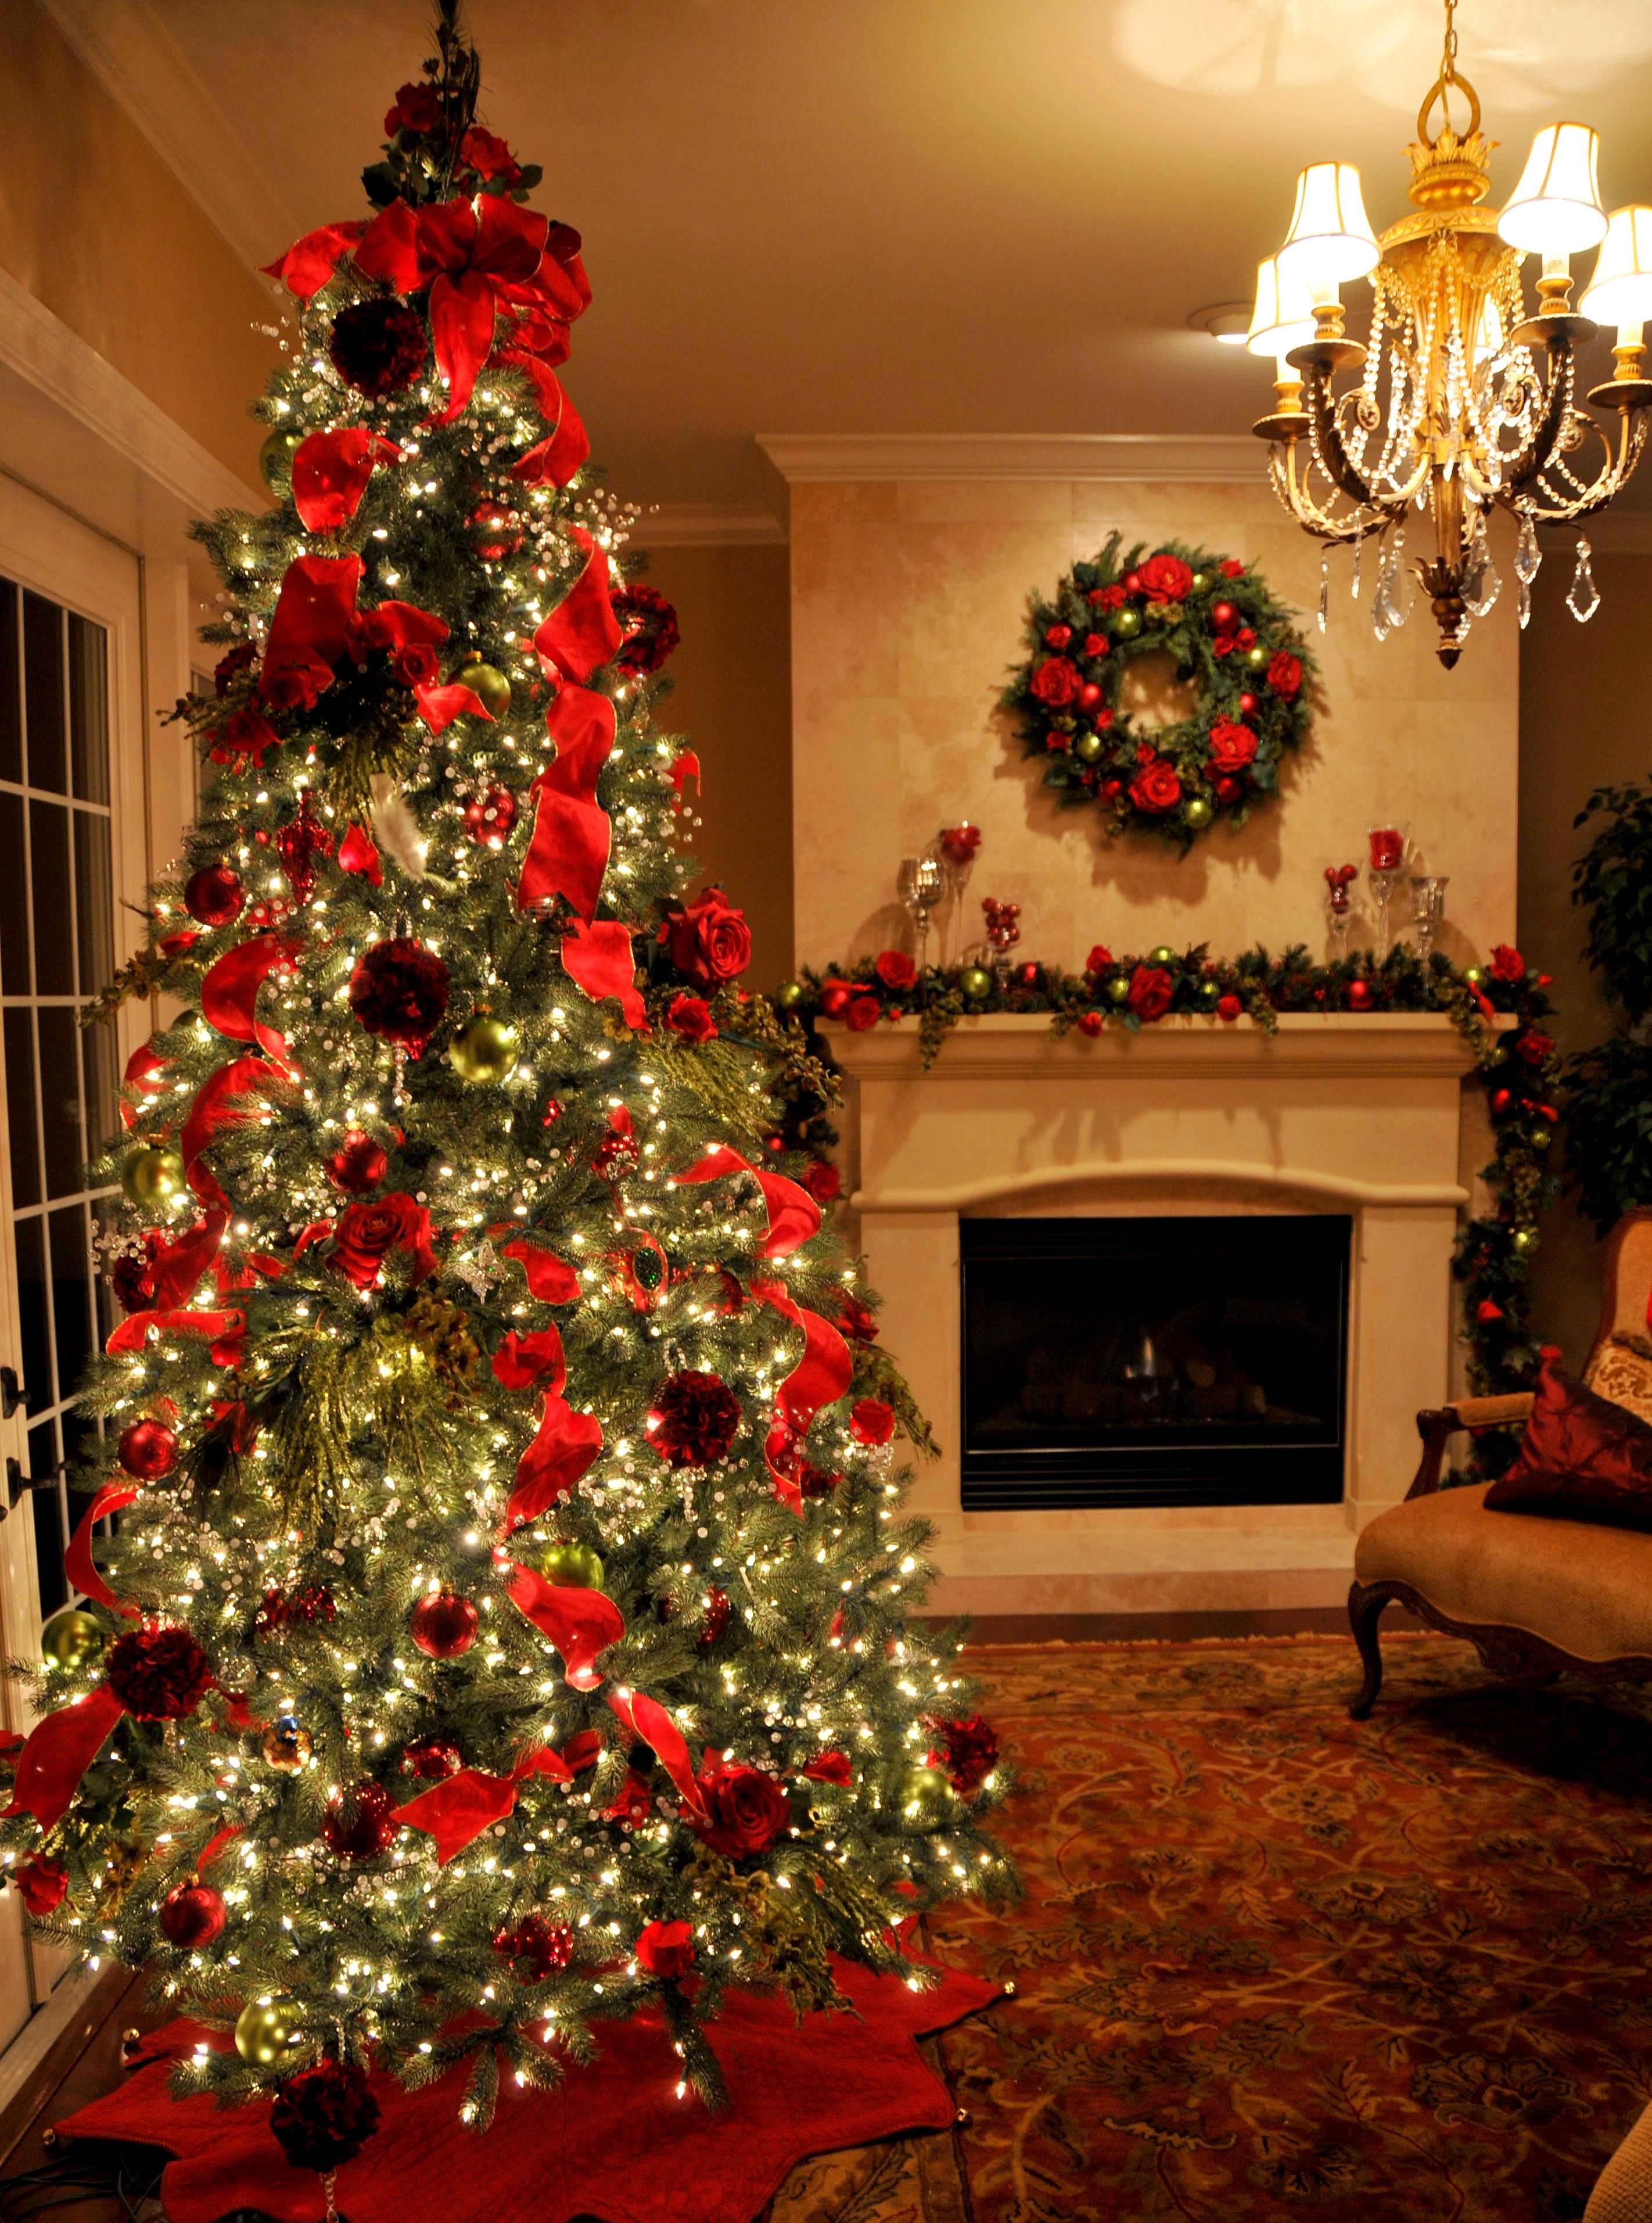 Red Christmas Decorations Pictures Photos and Images for